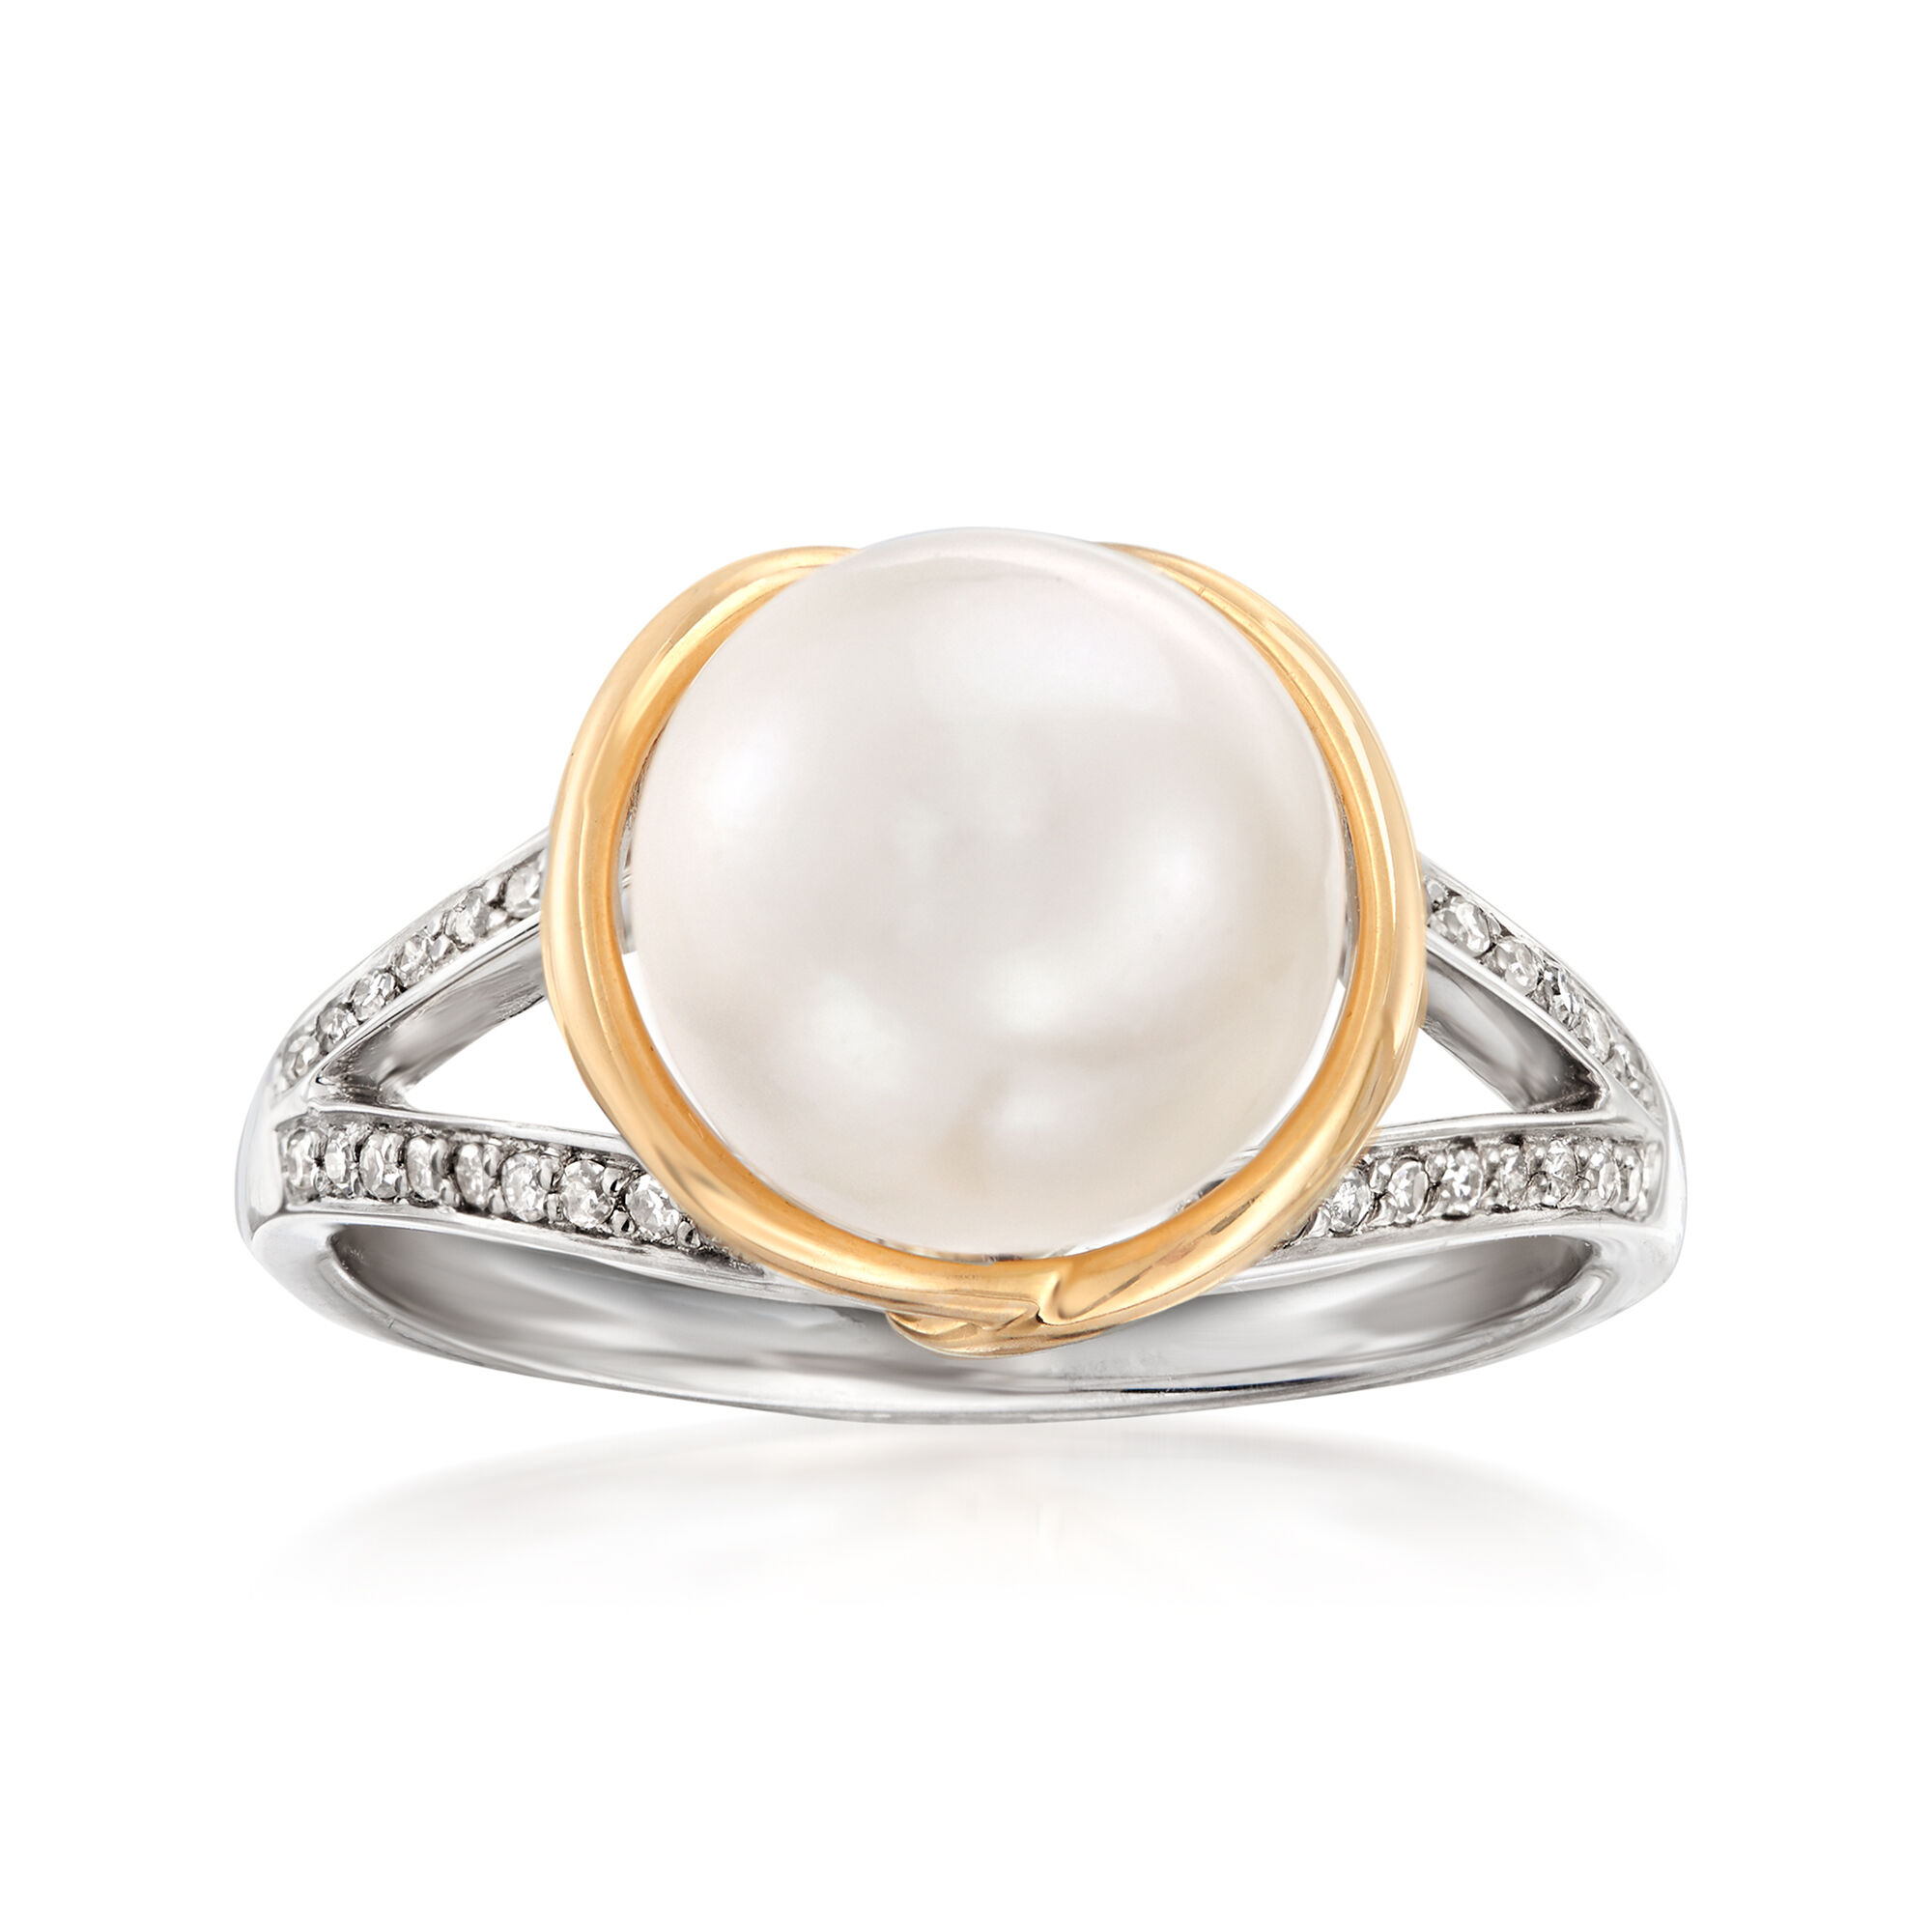 Sterling Silver with 14k 9.5-10mm Freshwater Cultured Pearl Ring